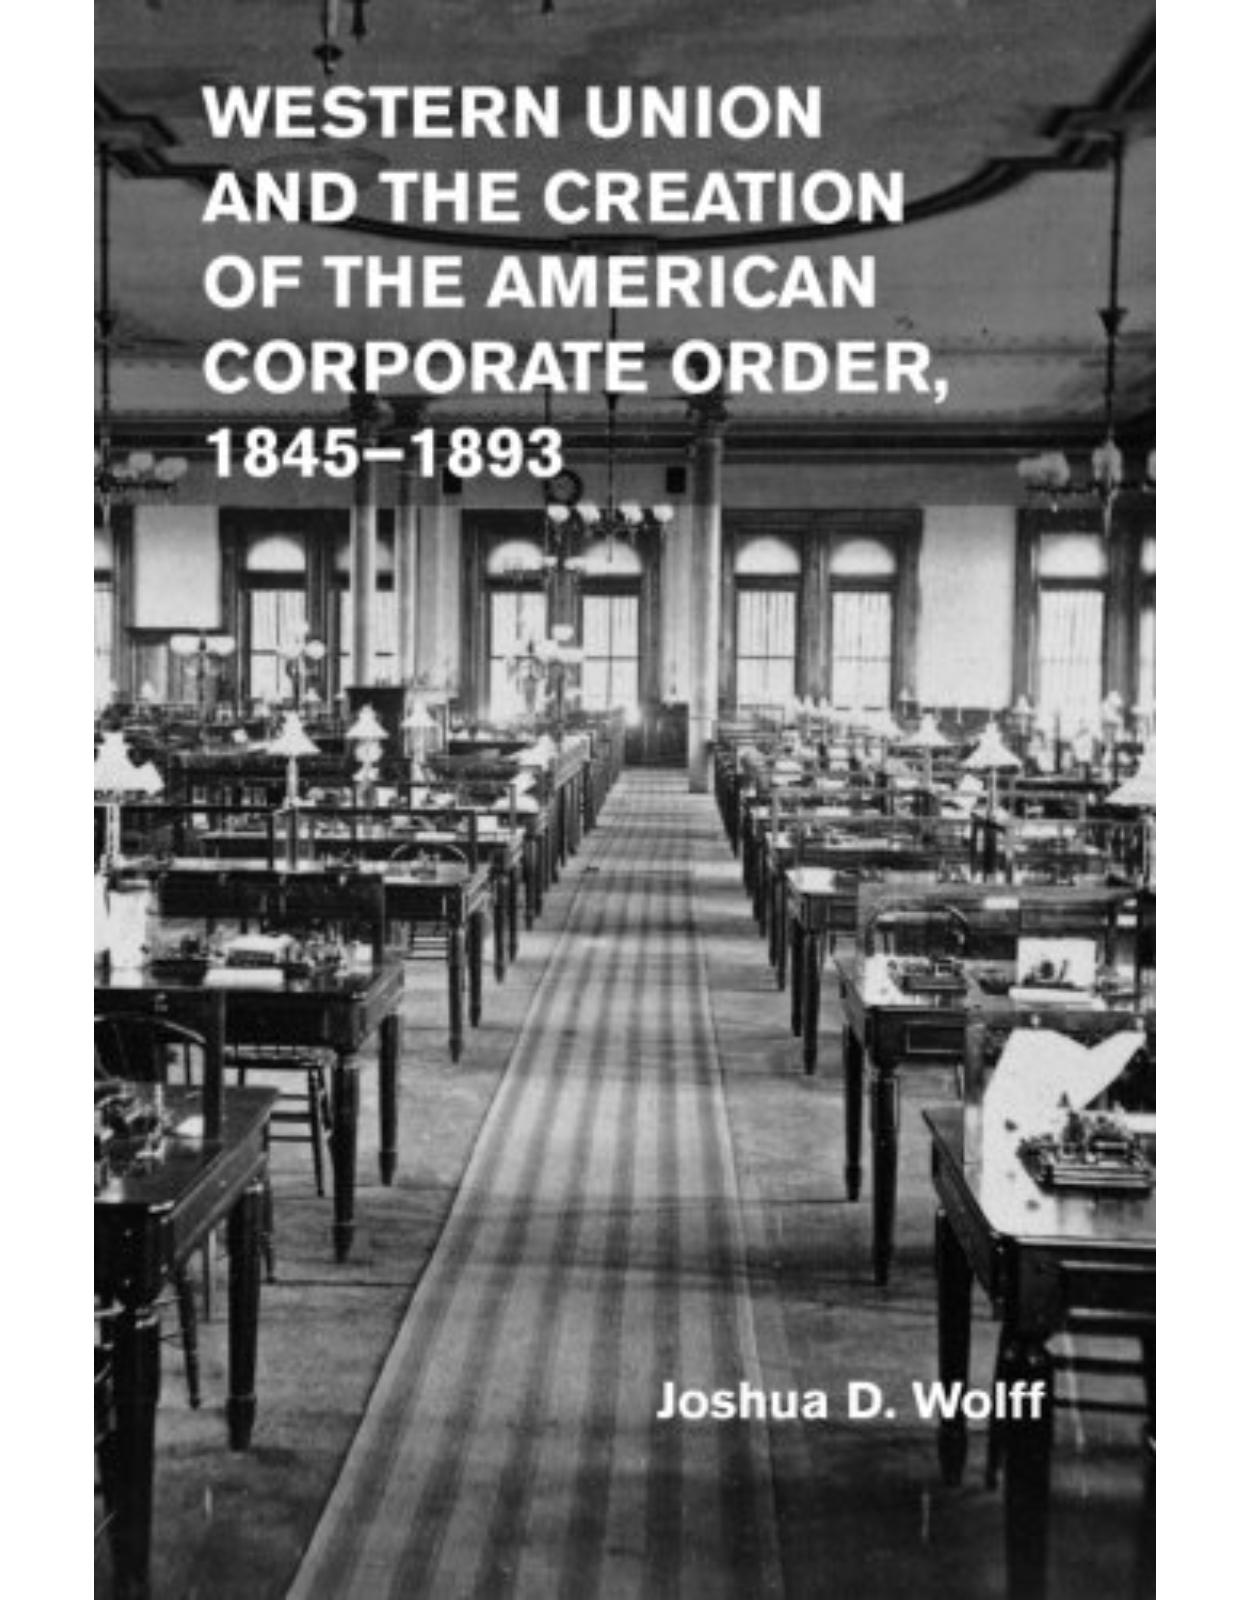 Western Union and the Creation of the American Corporate Order, 1845-1893